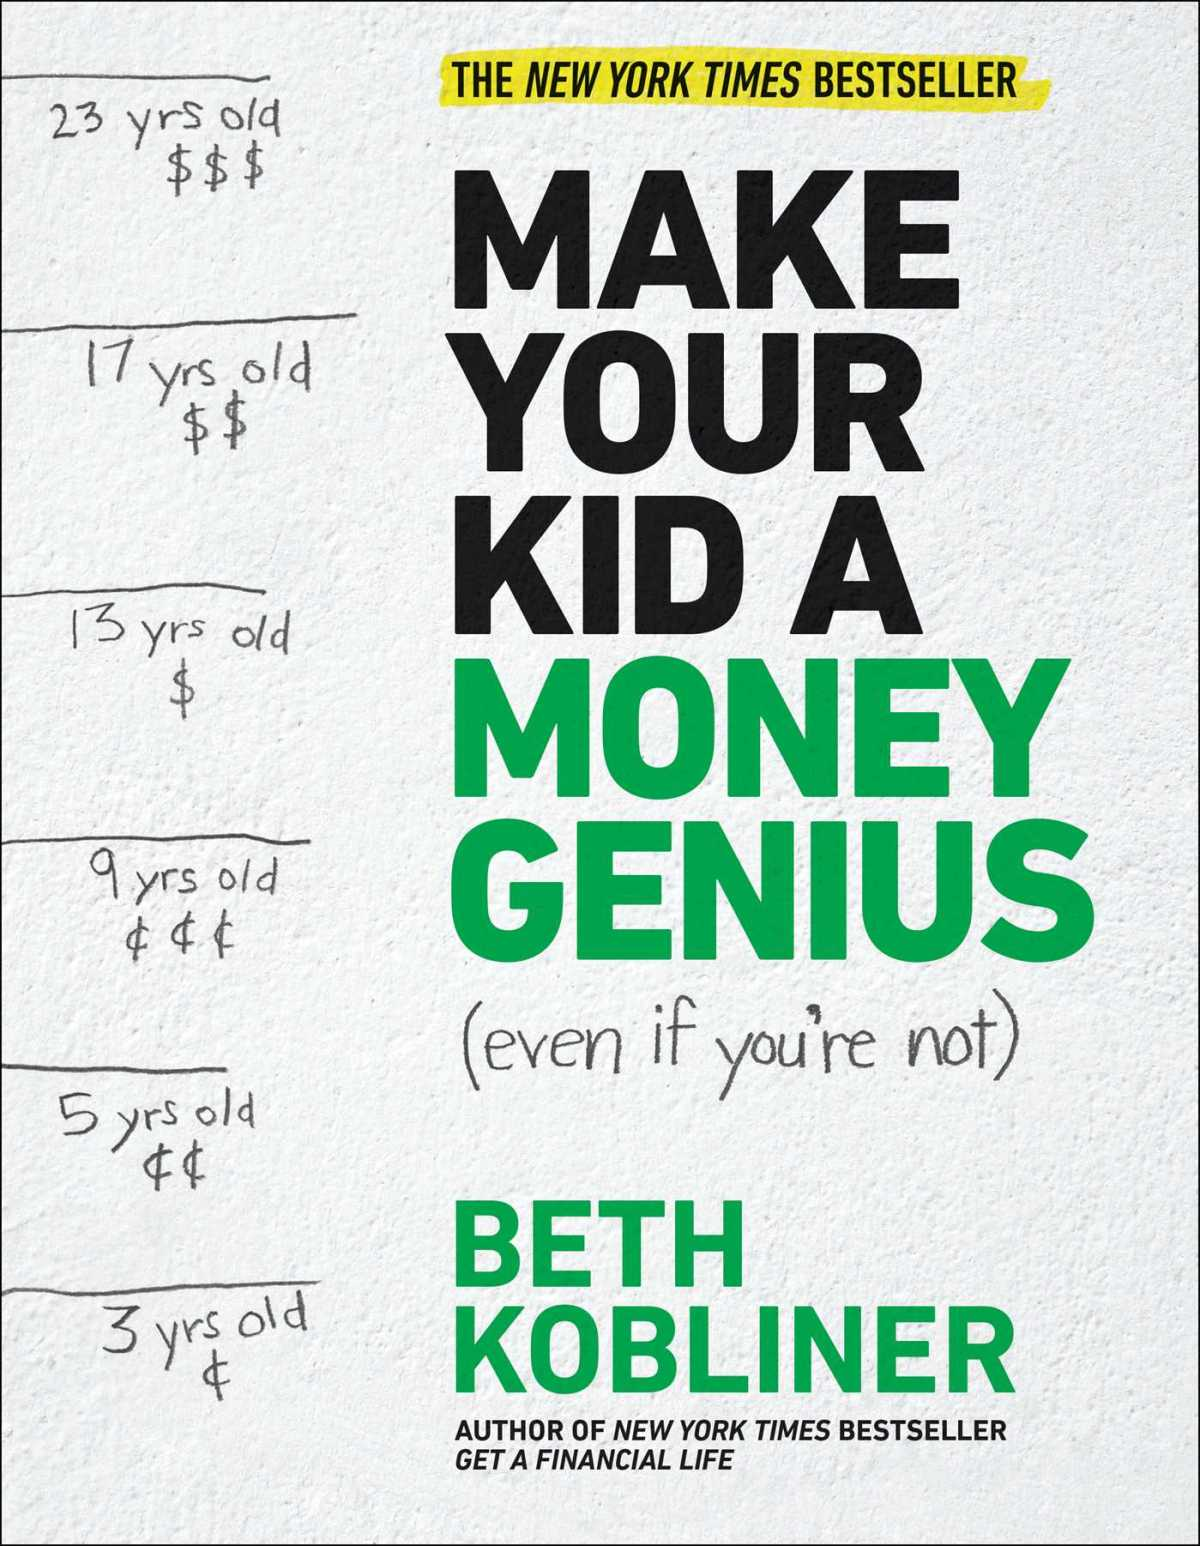 Beth Kobliner - Make Your Kid a Money Genius (Even If You're Not)